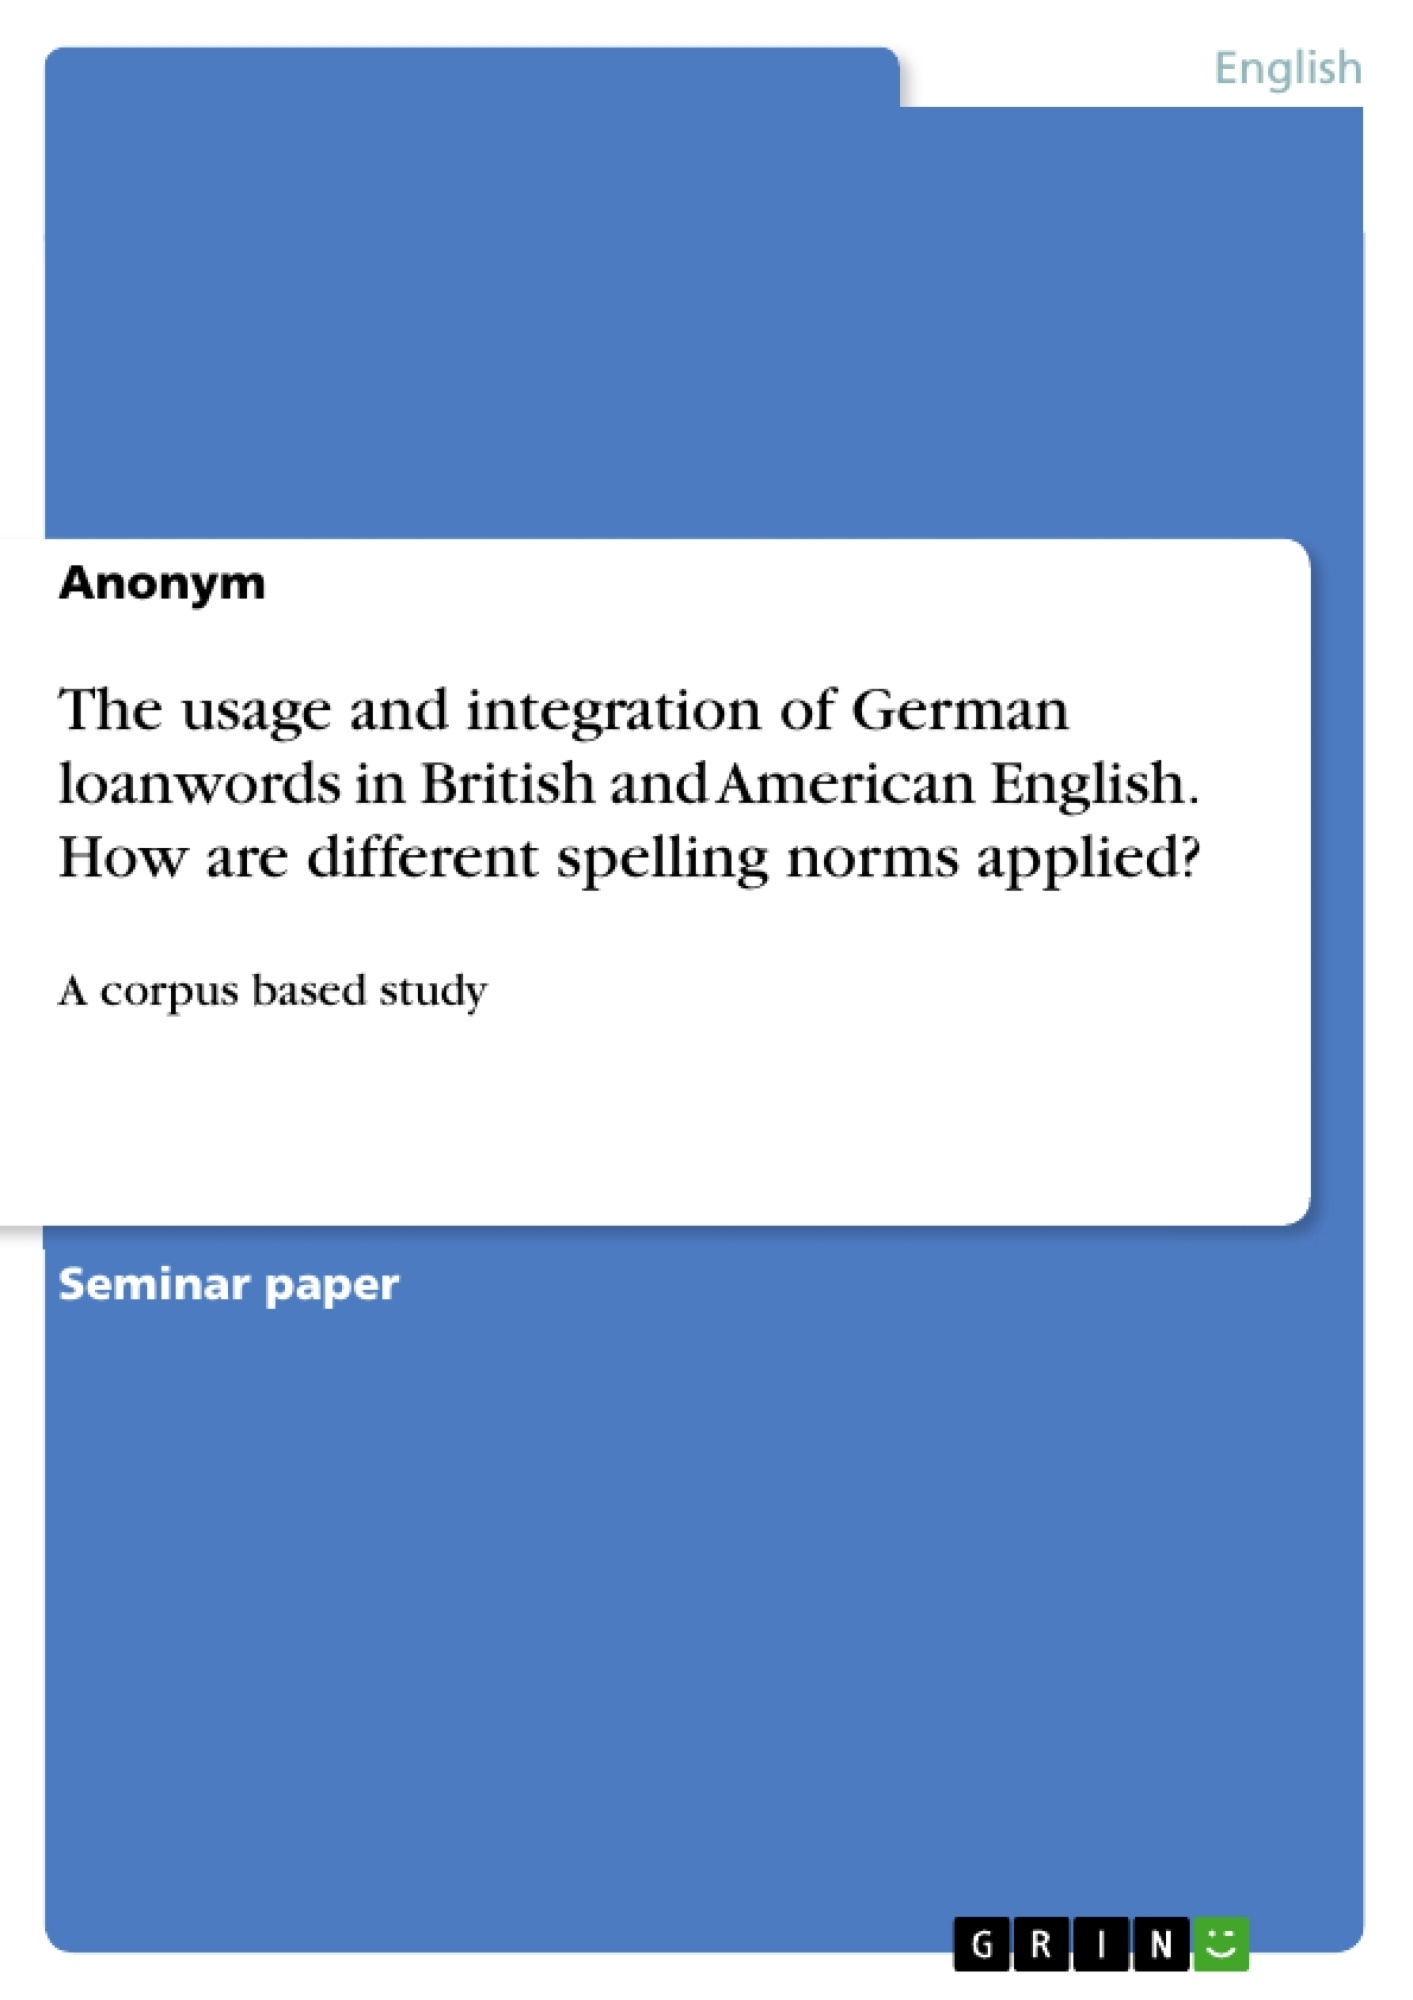 Title: The usage and integration of German loanwords in British and American English. How are different spelling norms applied?